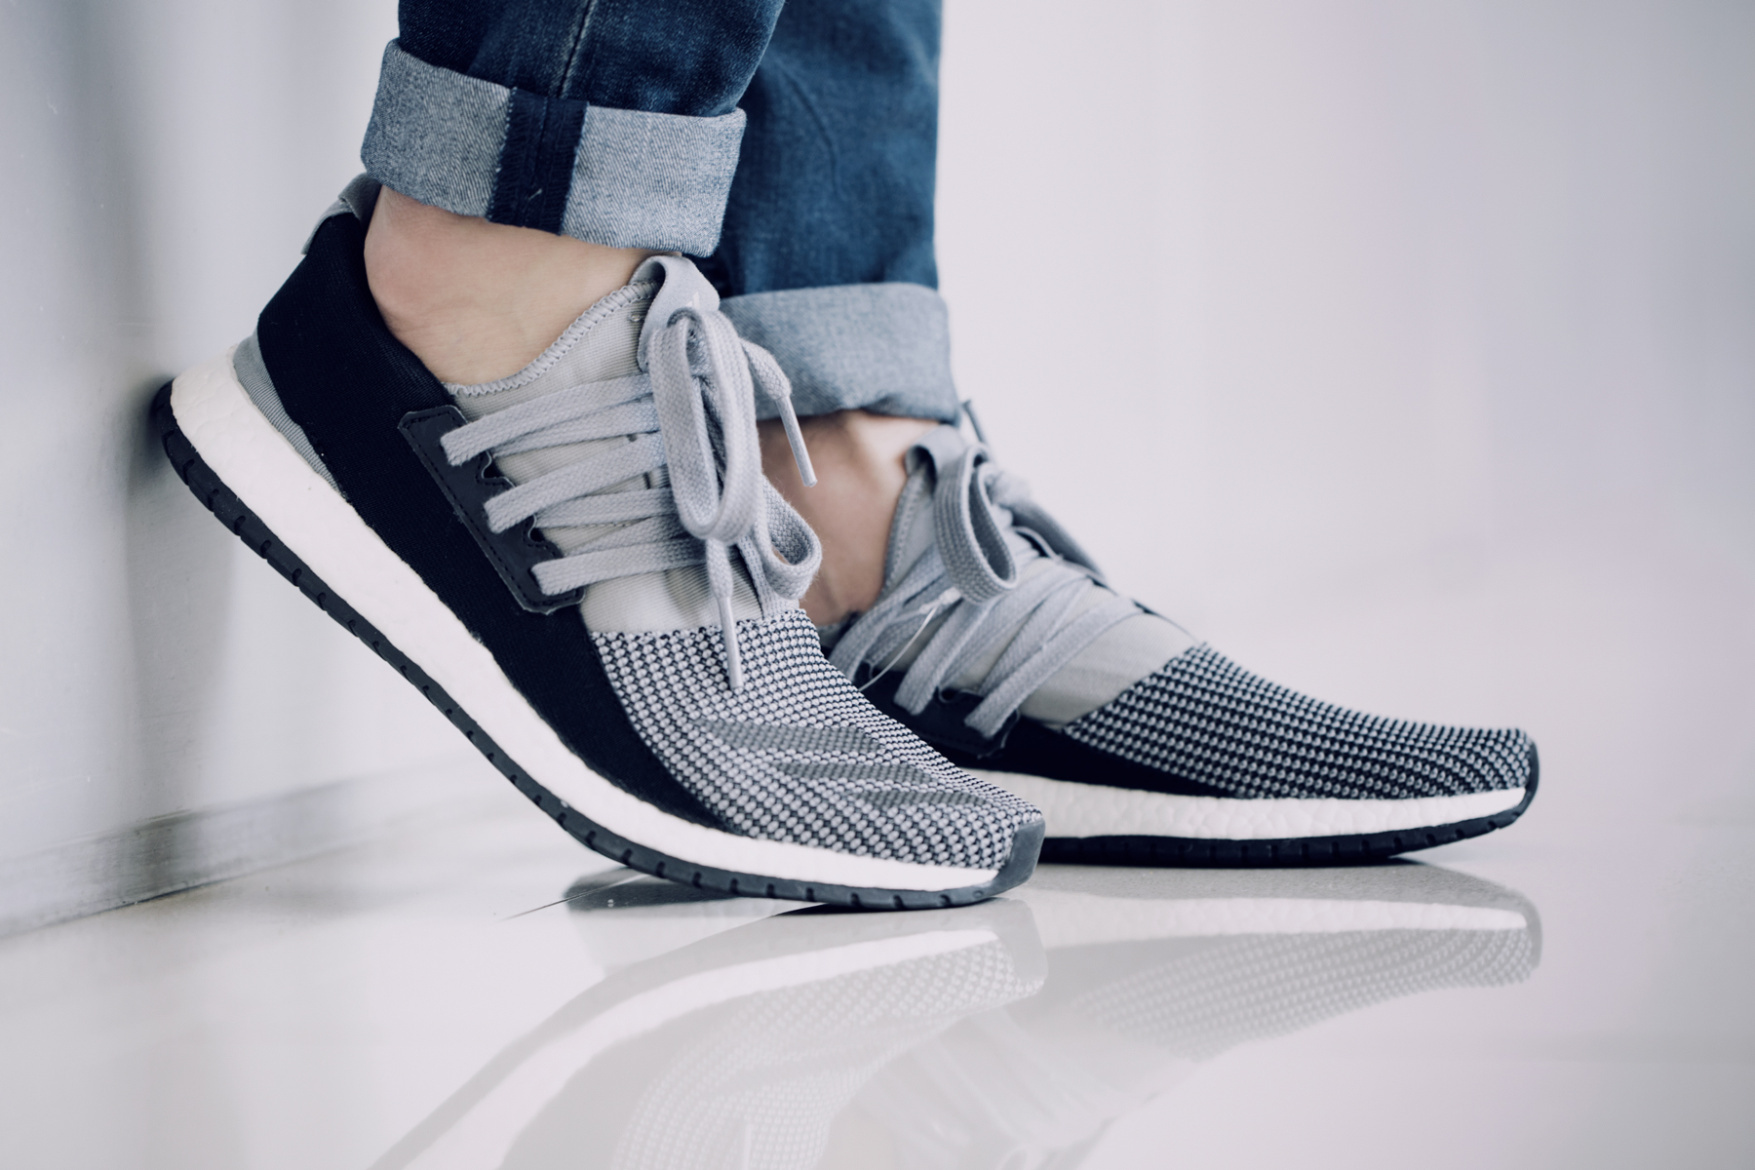 cfd25578d1883 cheapest adidas performance mens ultraboost a6761 753a7  new arrivals adidas  pure boost r raw energy 3 colorways 8d95c 8a90c